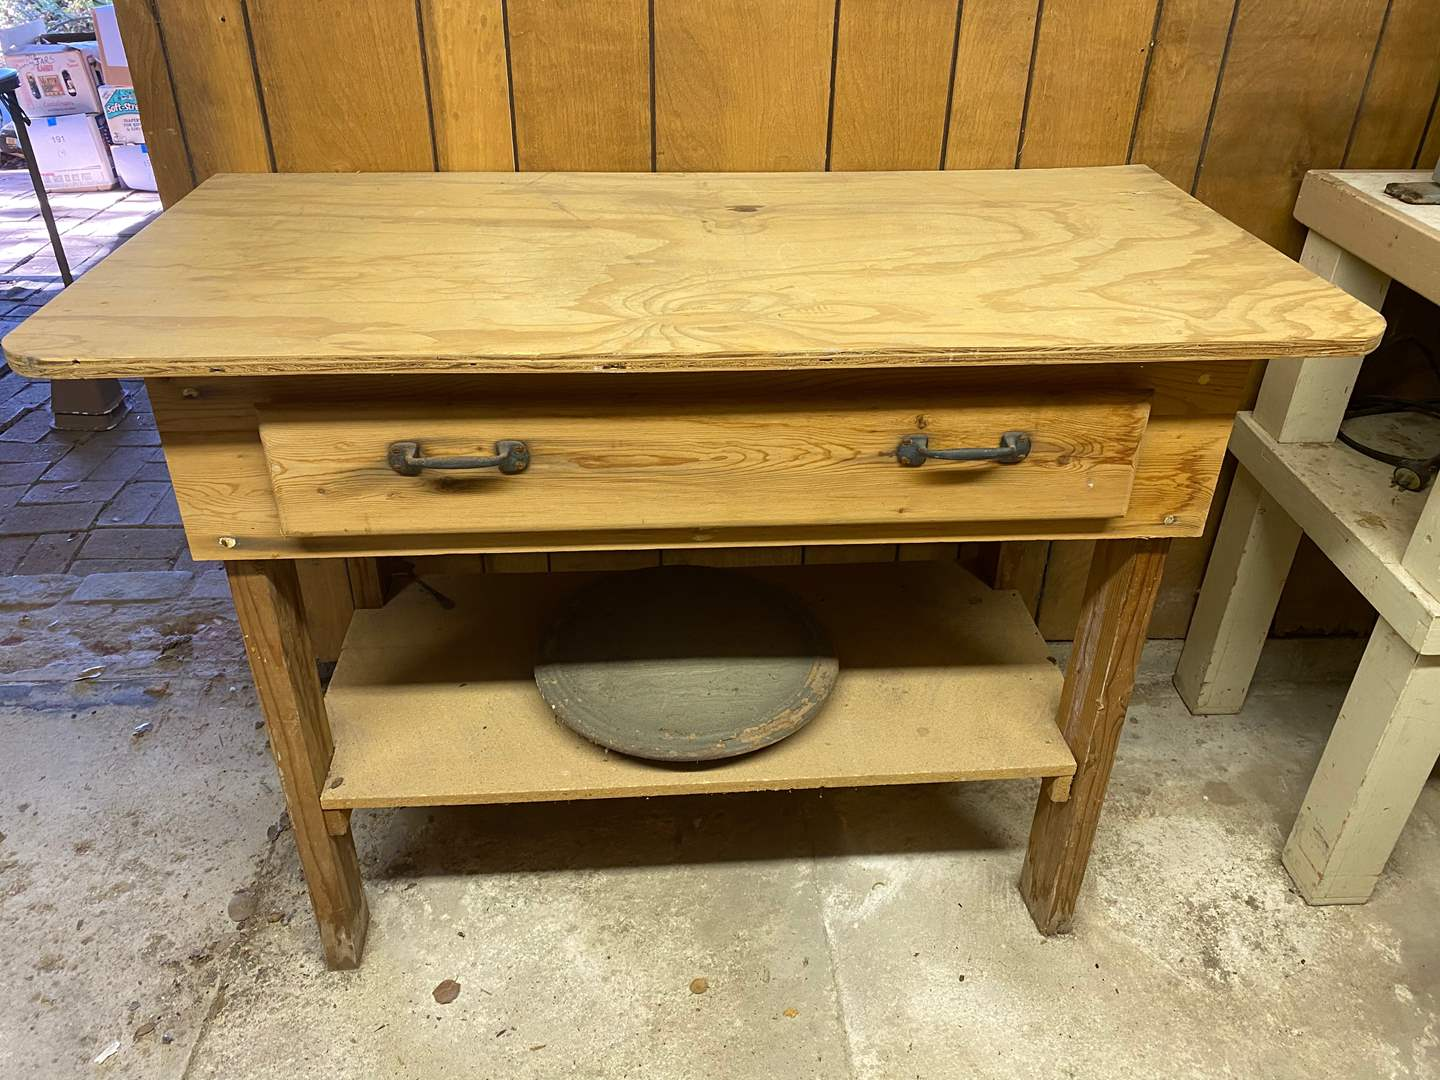 Lot # 196 - WORK BENCH W/LAZY SUSAN (main image)